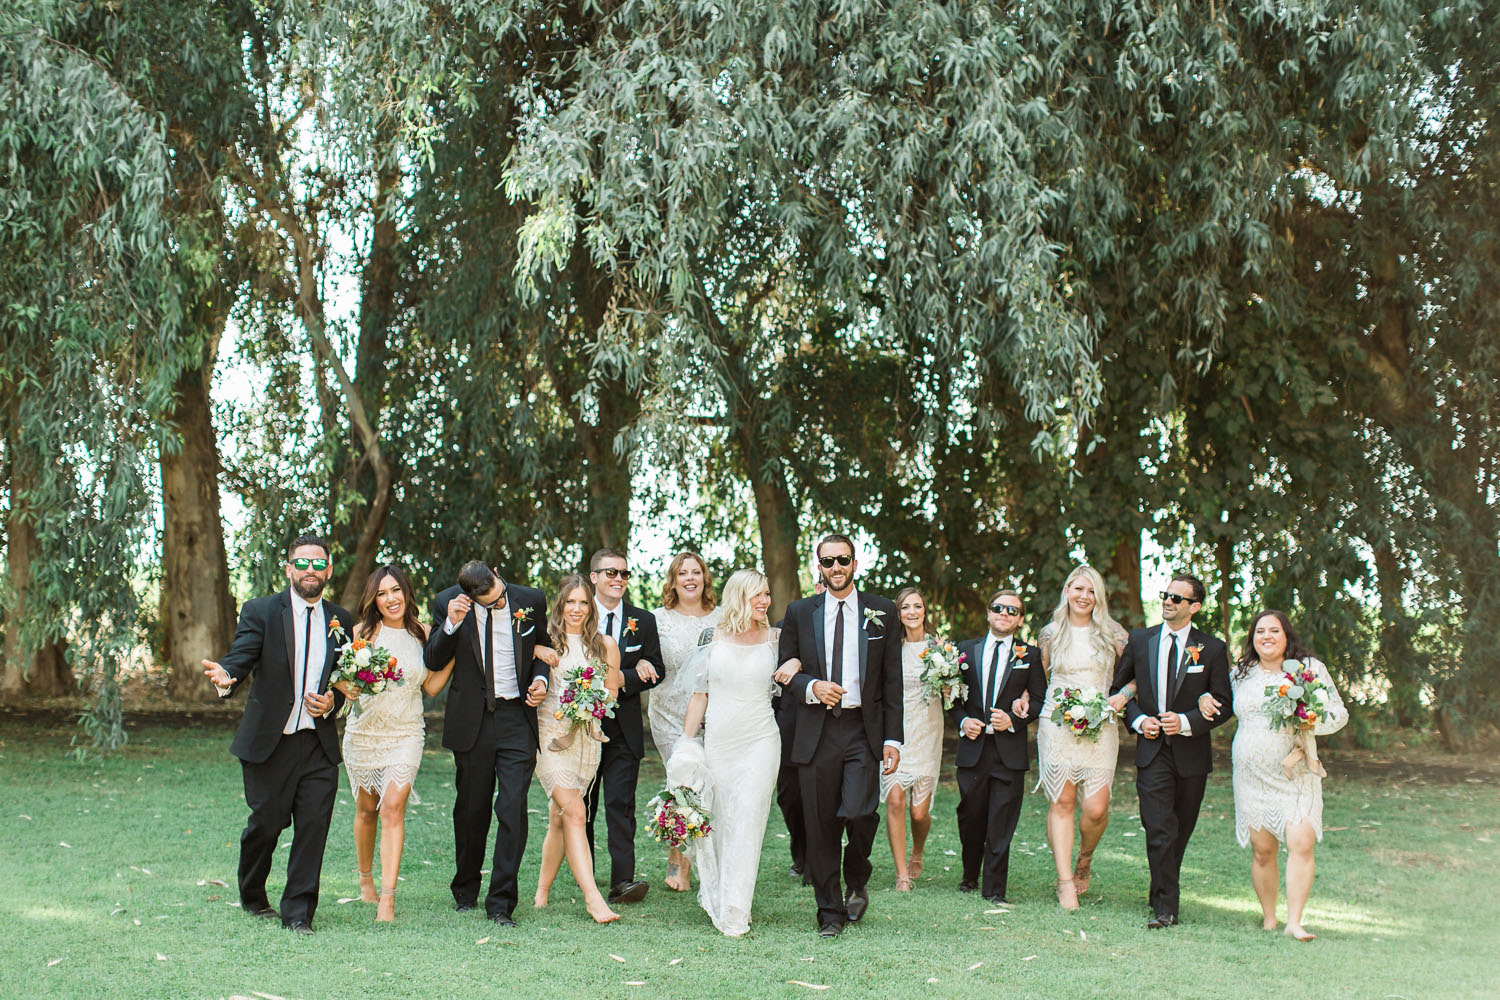 The Photege - Elegant Boho Wedding on Suburu Farm in Bakersfield California- Cassie and Darin Buoni-3002